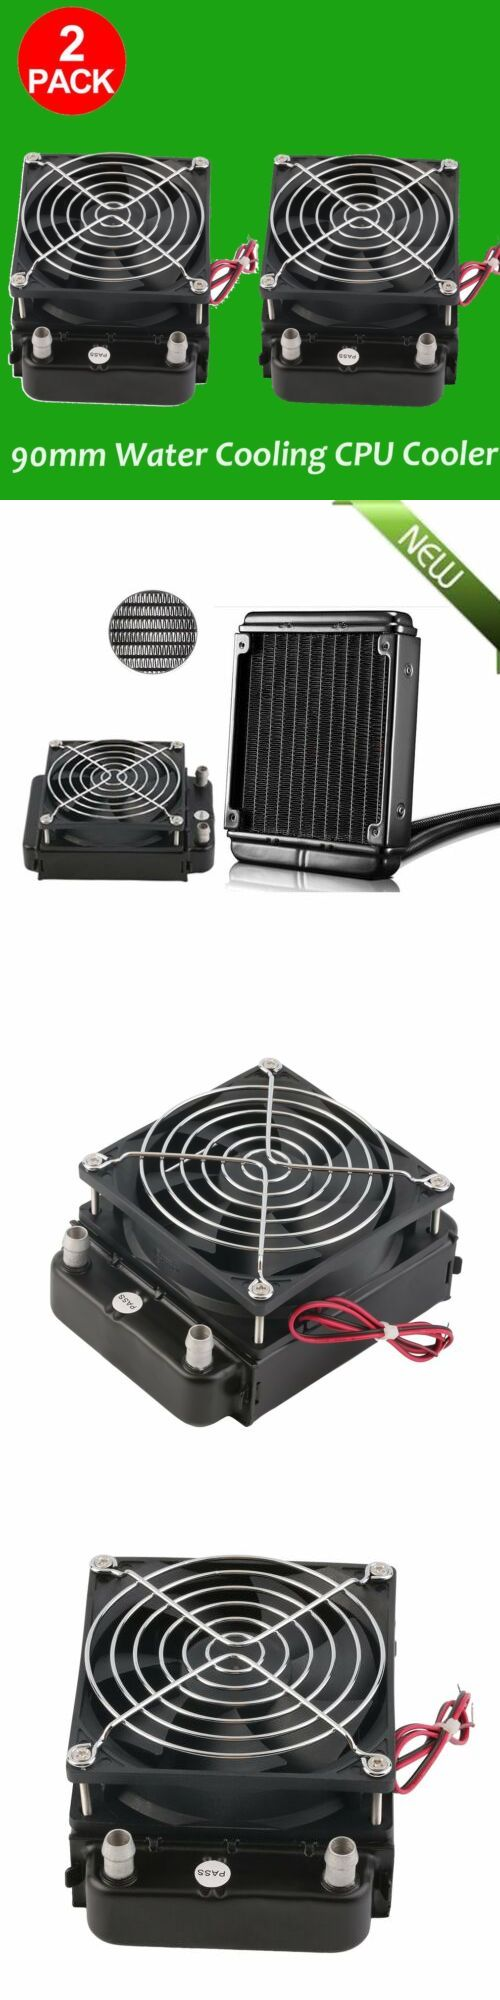 NEW 90mm Water Cooling CPU Cooler Row Heat Exchanger Radiator With Fan for PC MX